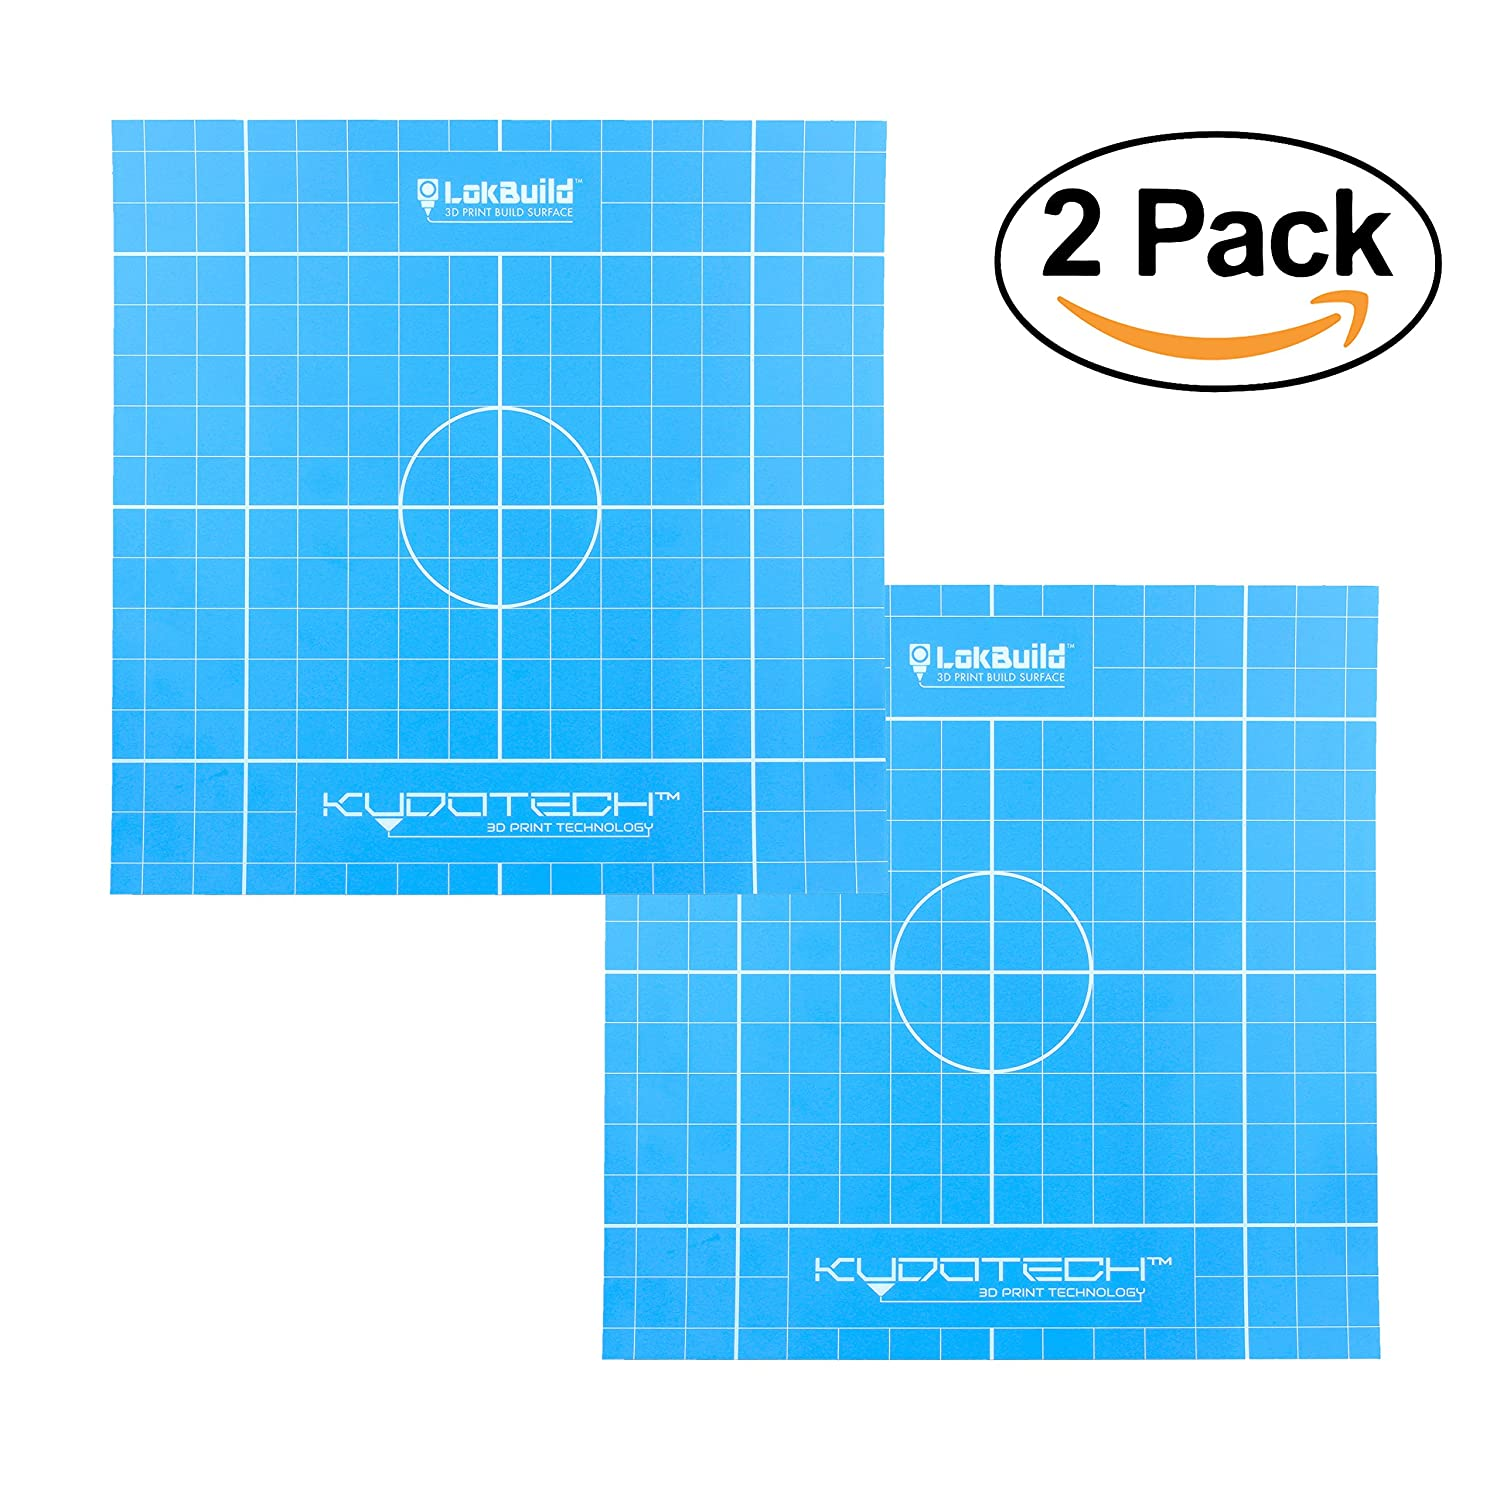 LokBuild 3D Print Build Surface, sticky back sheet, quick, clean removal of printed parts, versatile (TWIN PACK 6' (153x153mm)) versatile (TWIN PACK 6 (153x153mm))